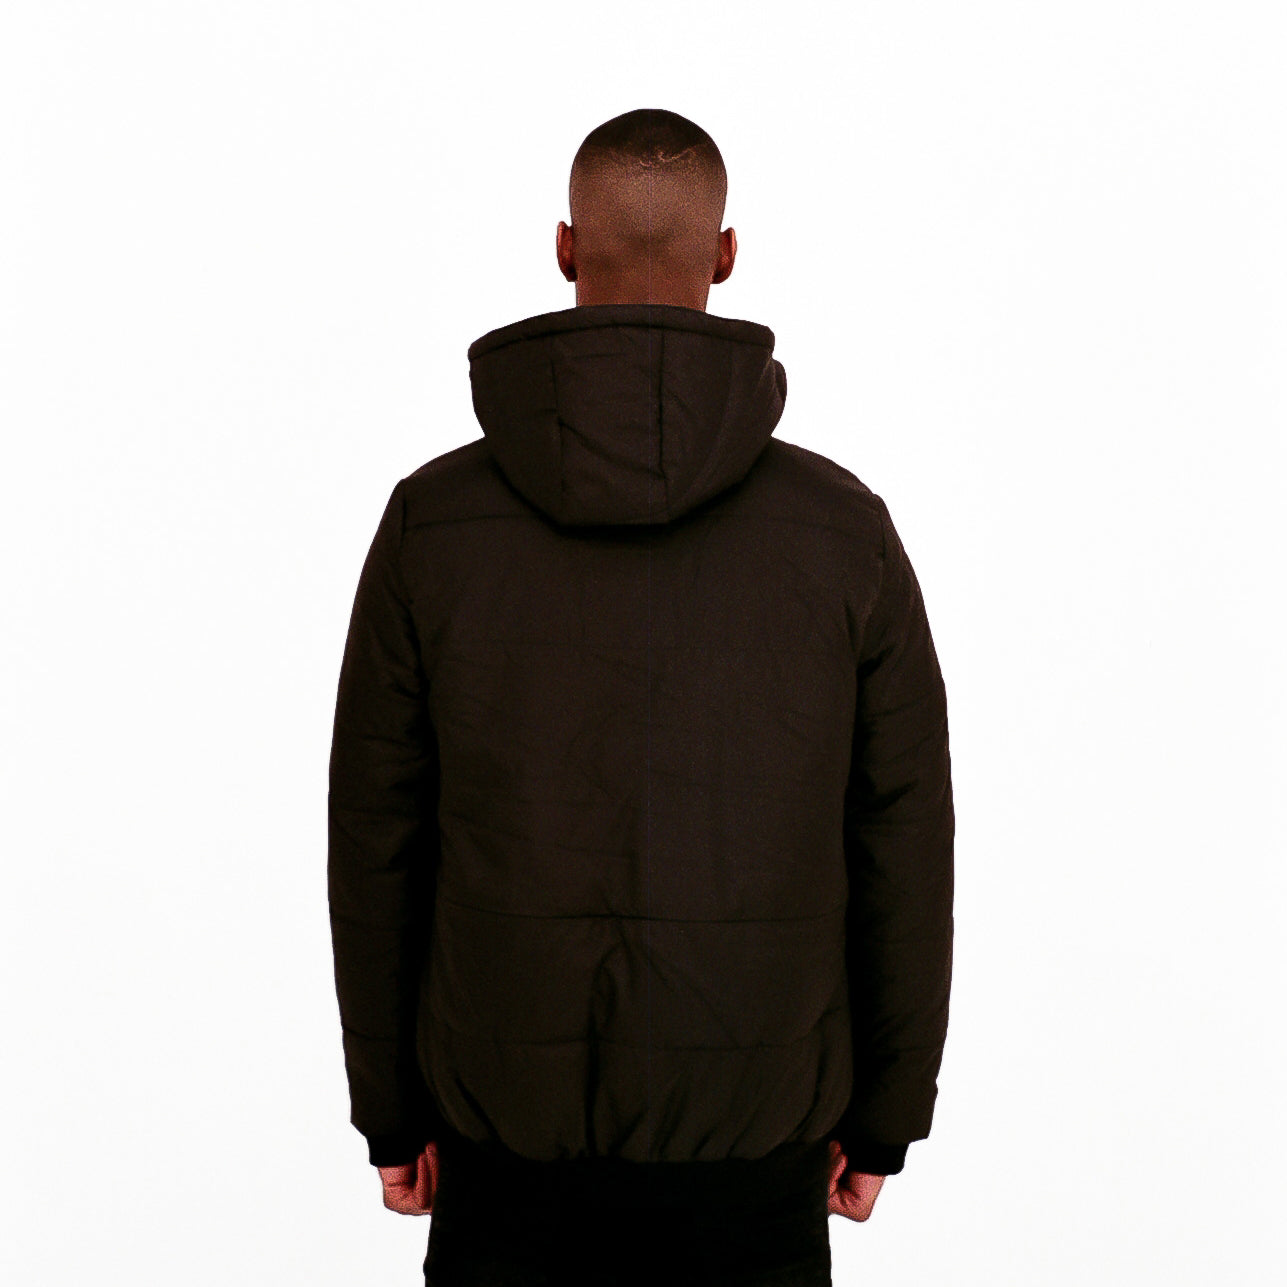 Cranium Empire Coal Jacket (Black)